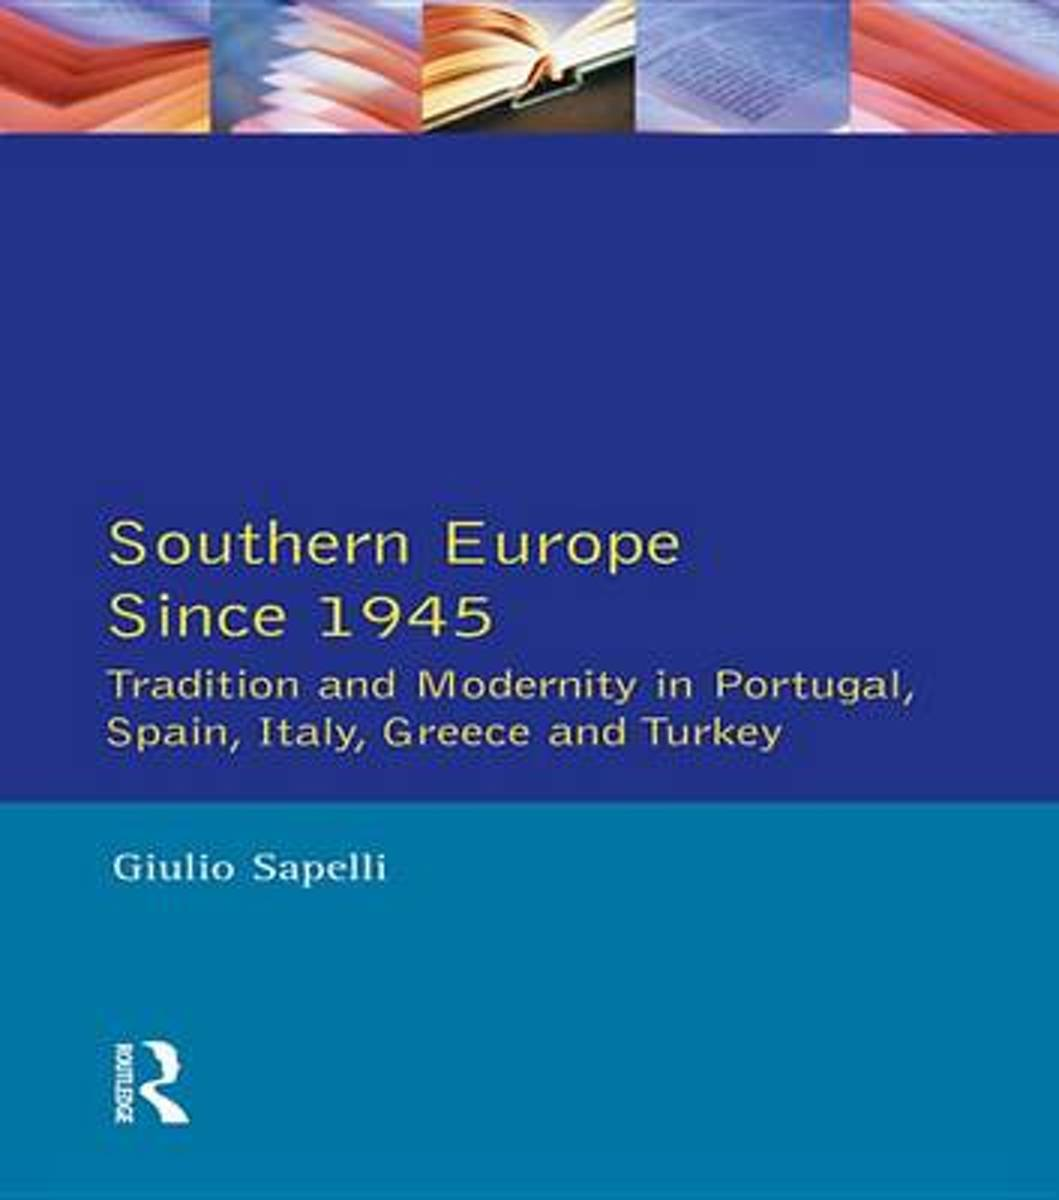 euroscepticism in southern europe verney susannah